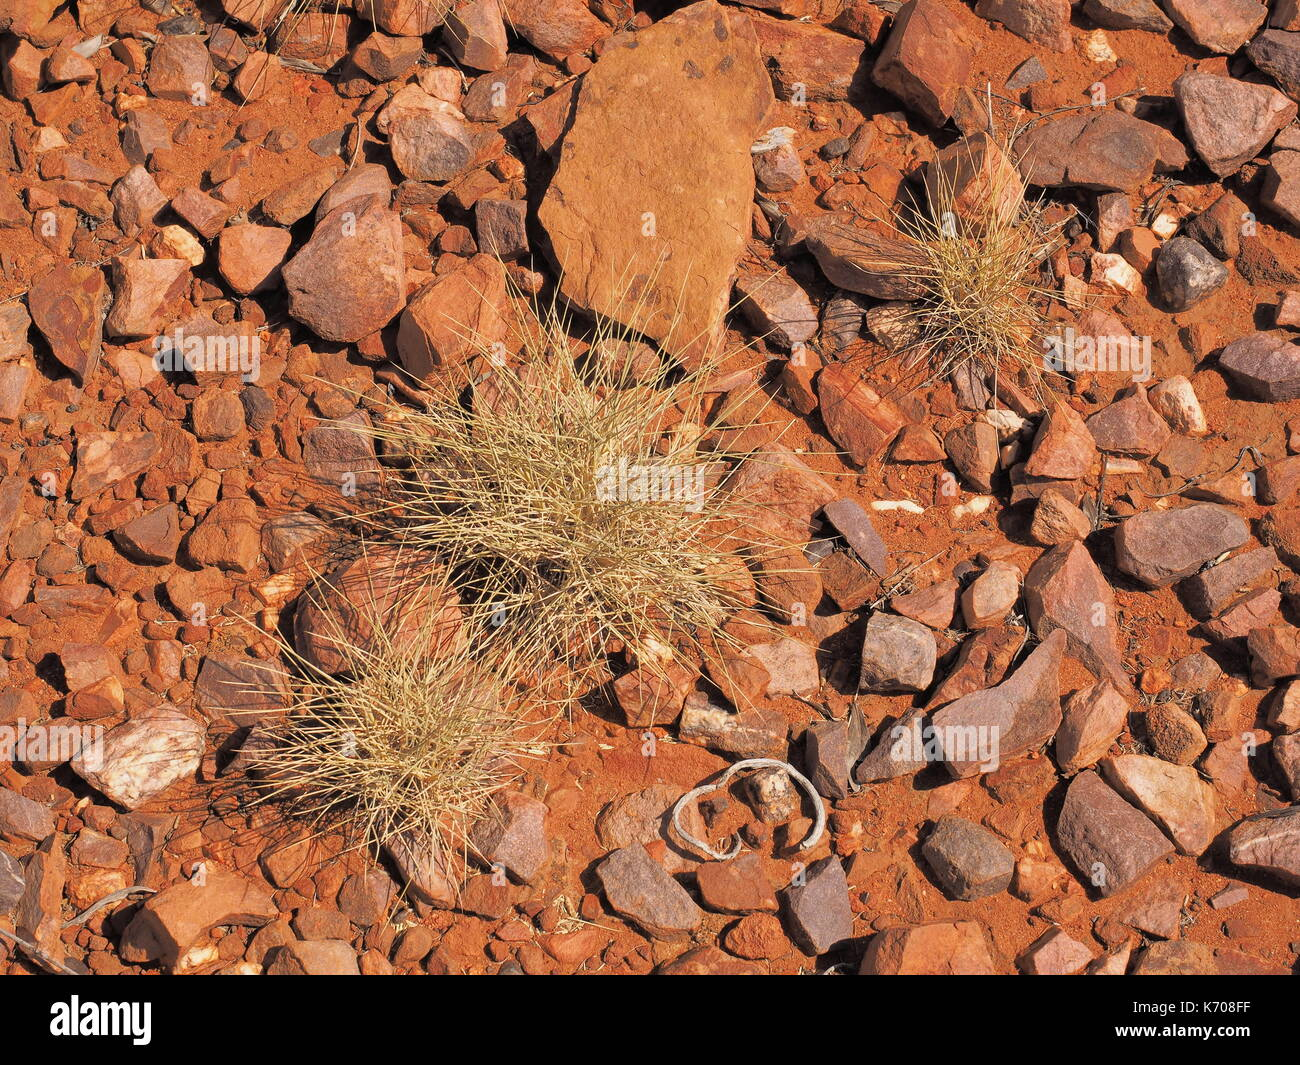 Spinifex  Triodia species on red rock surface at Trephina Gorge, east MacDonnell ranges near Alice Springs, Northern Territory, Australia 2017 - Stock Image